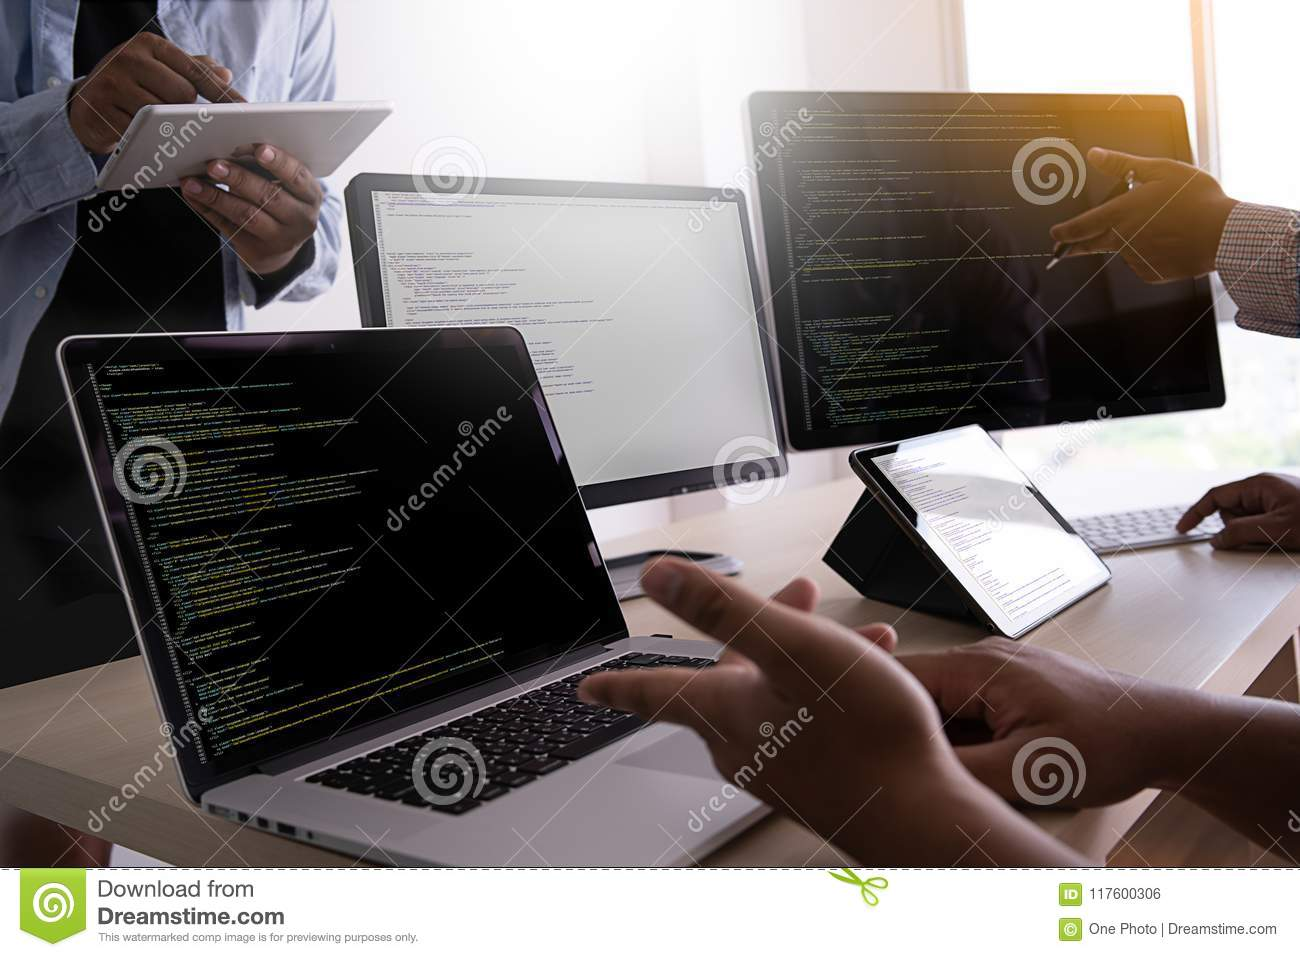 Programmer working Developing programming technologies Web Design Online Technology